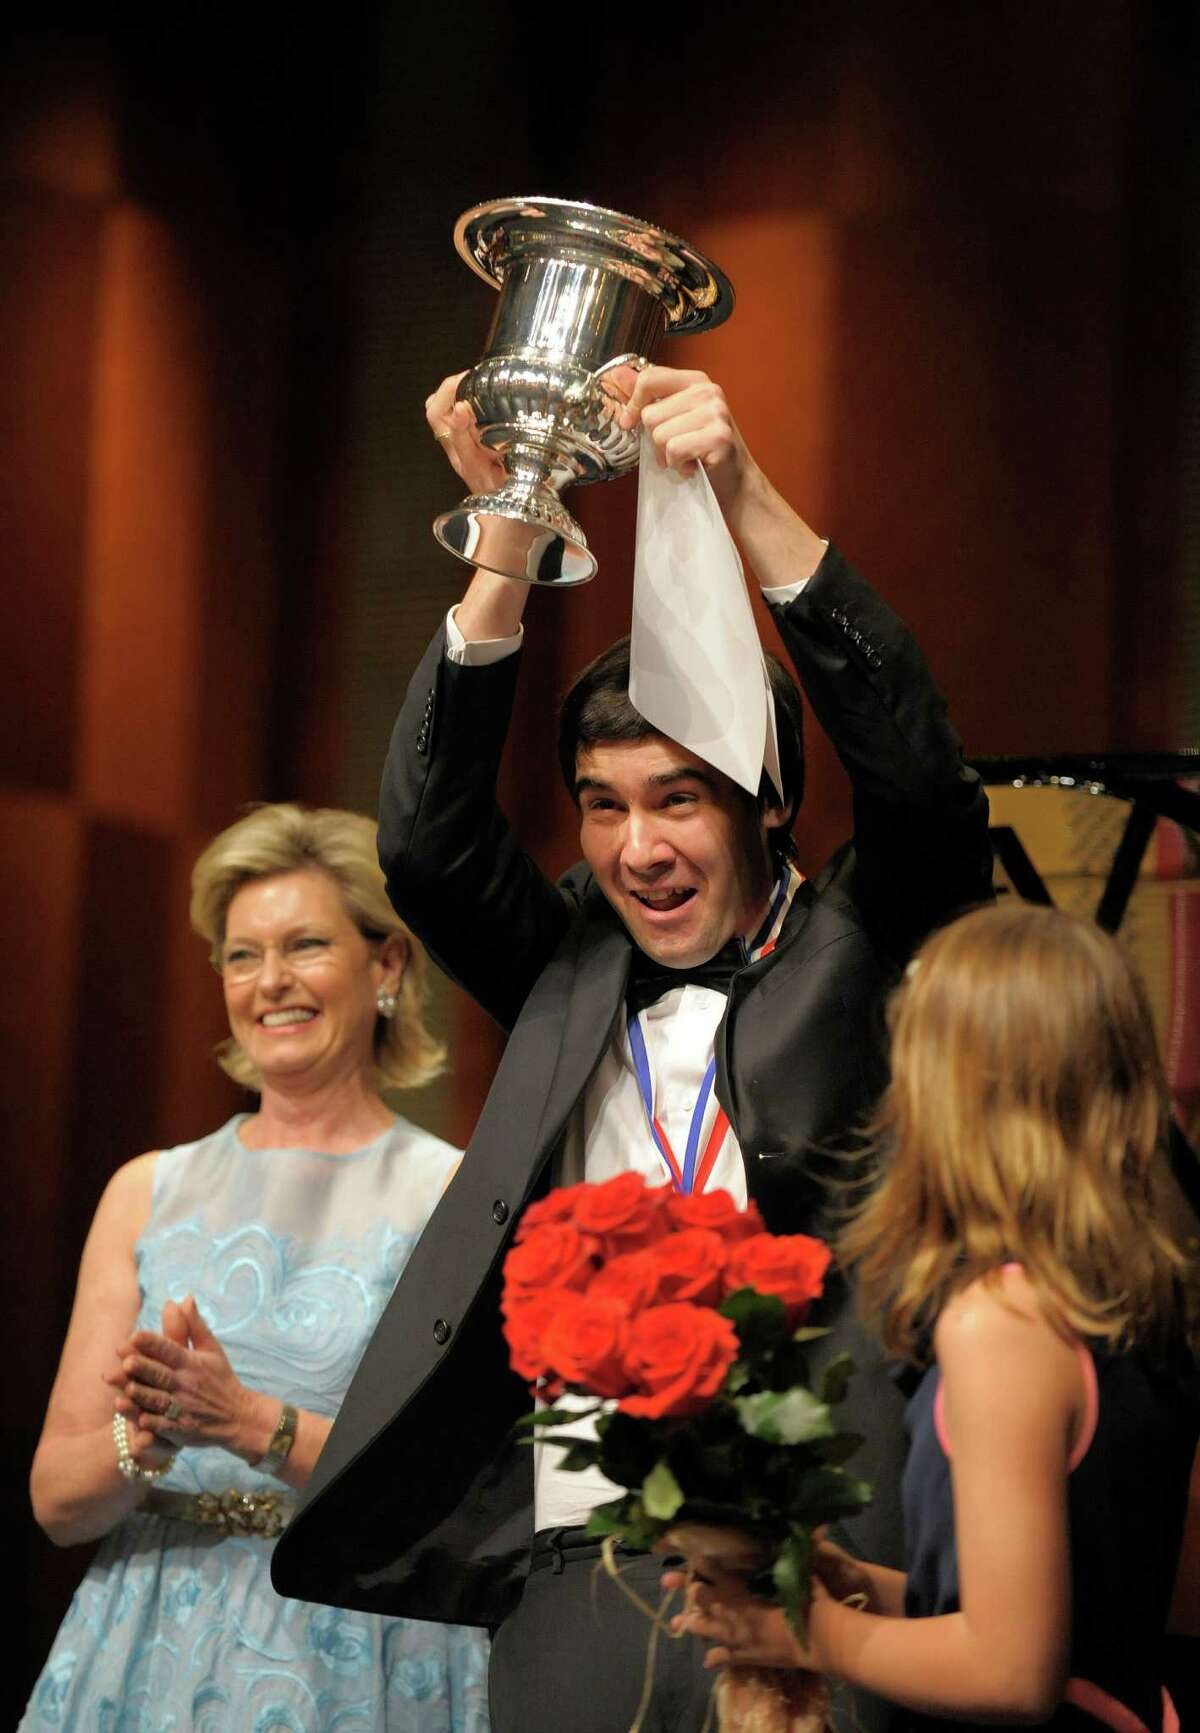 Vadym Kholodenko, winner of this year's Van Cliburn International Piano Competition, will play a recital at the Wortham Theater Center on Saturday.